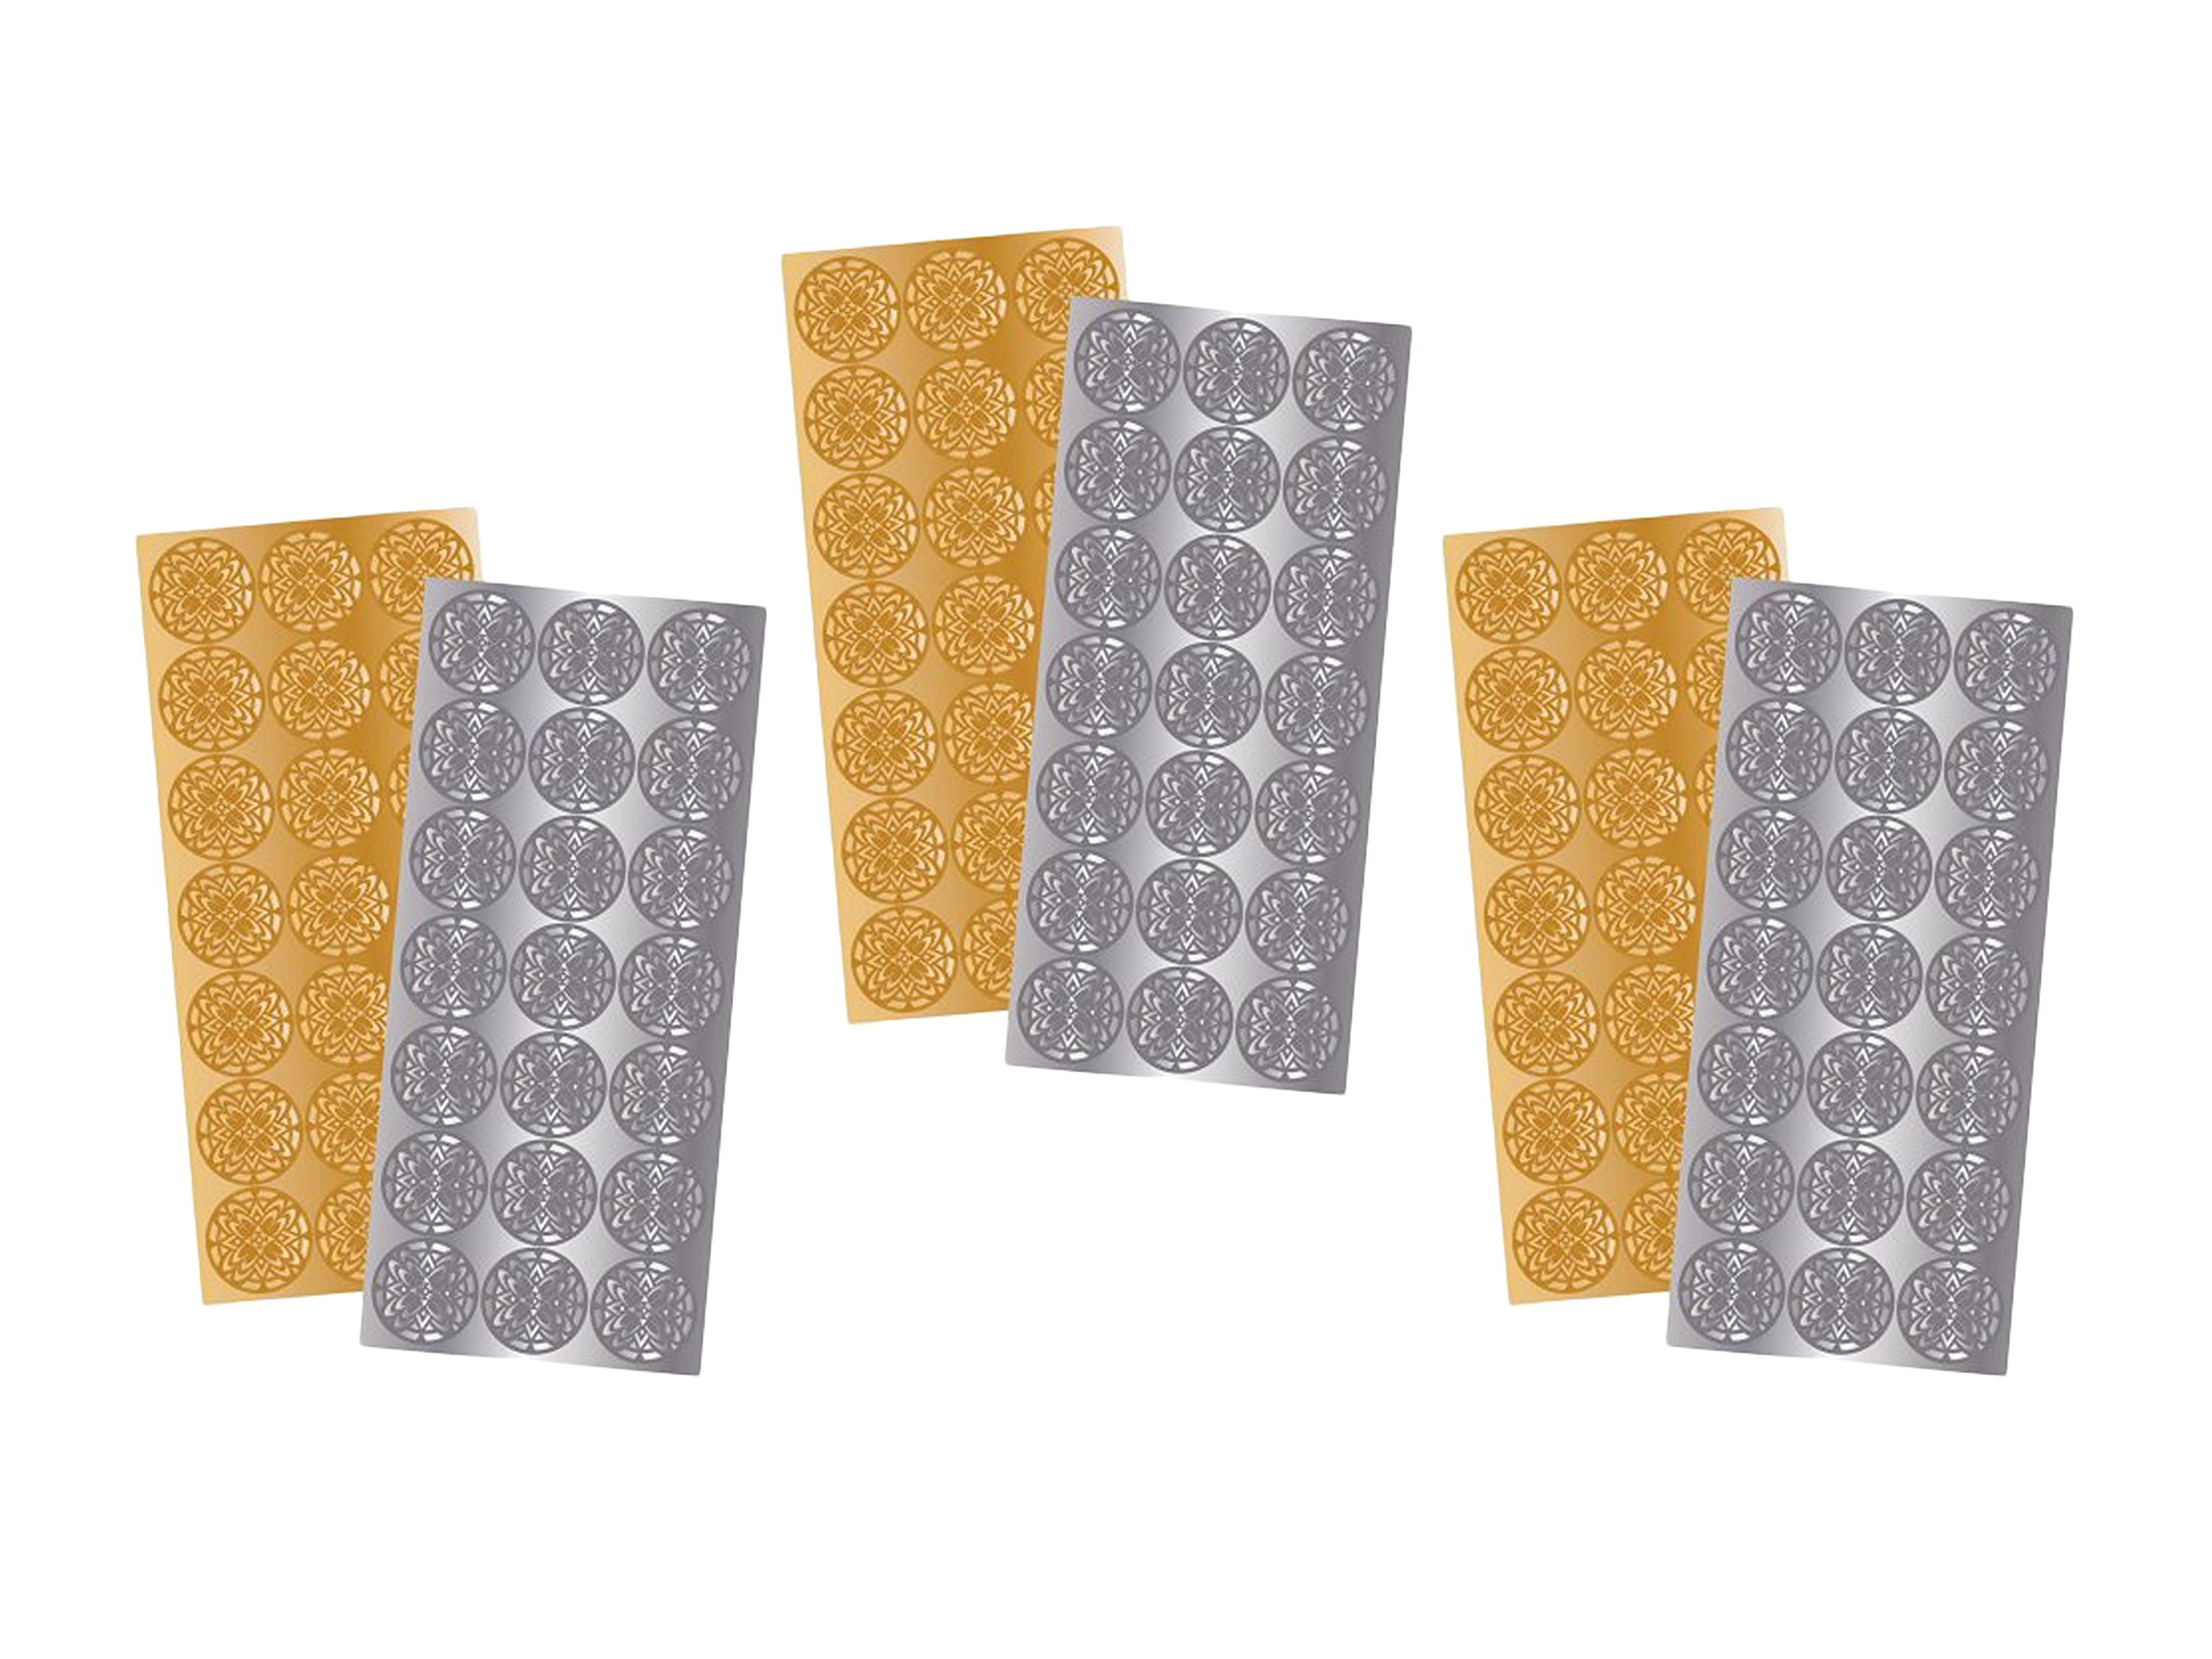 3 Pack of 2 Quality Park 21 Gold and 21 Silver Decorative Foil Envelope Seals by Maven Gifts by Essendant (Image #1)